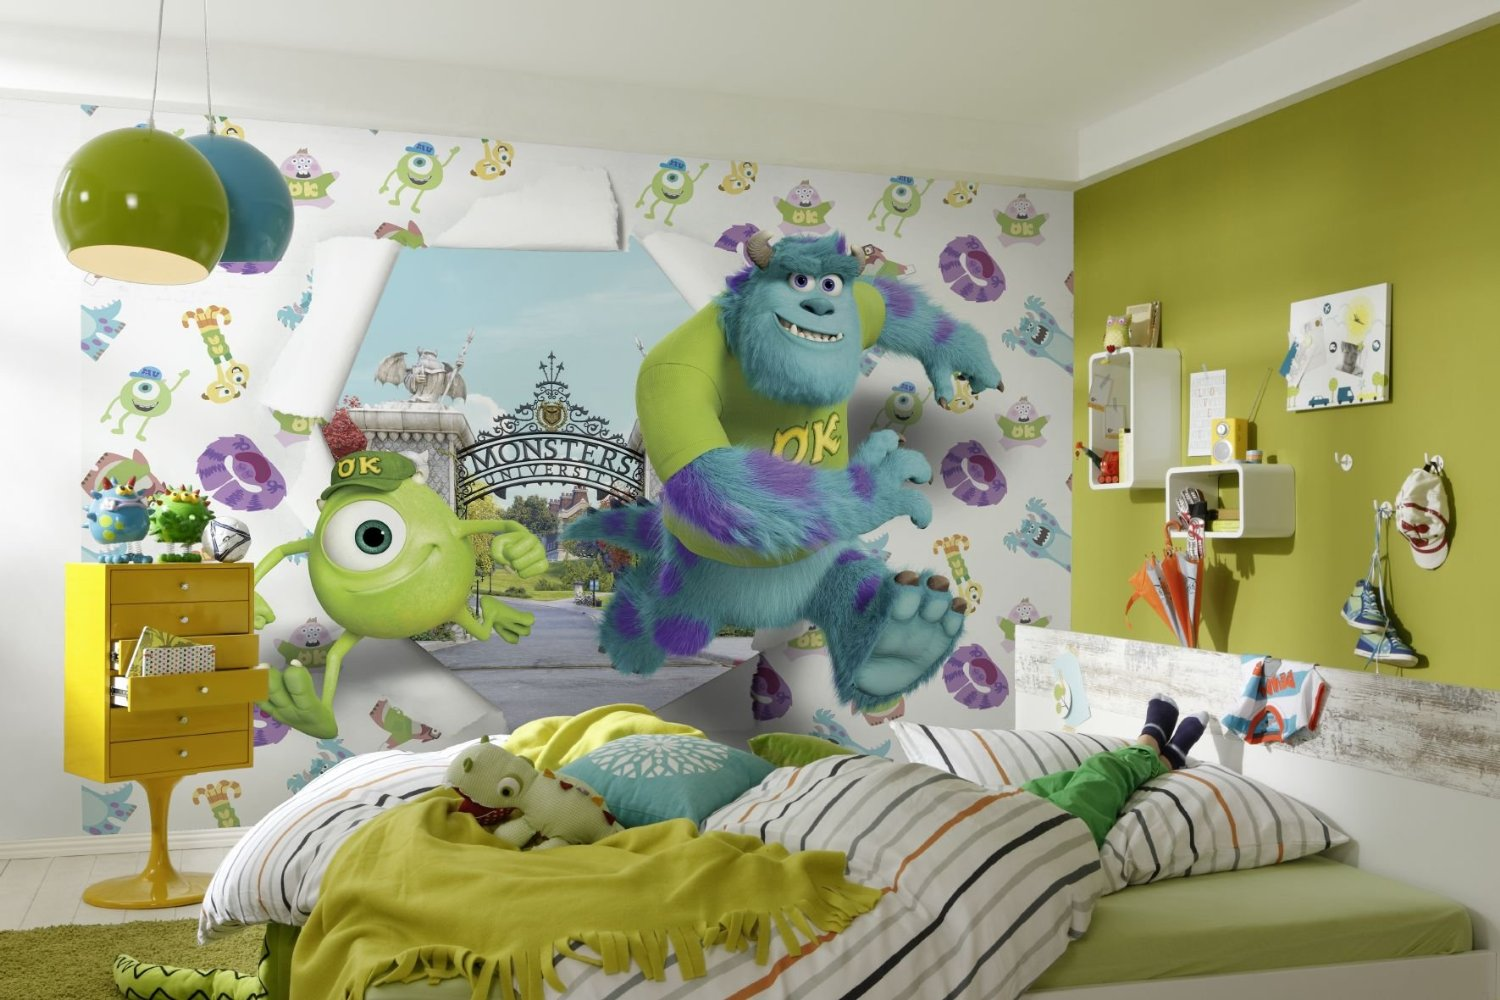 Fototapete kinderzimmer kinder  tapete photomural monsters university